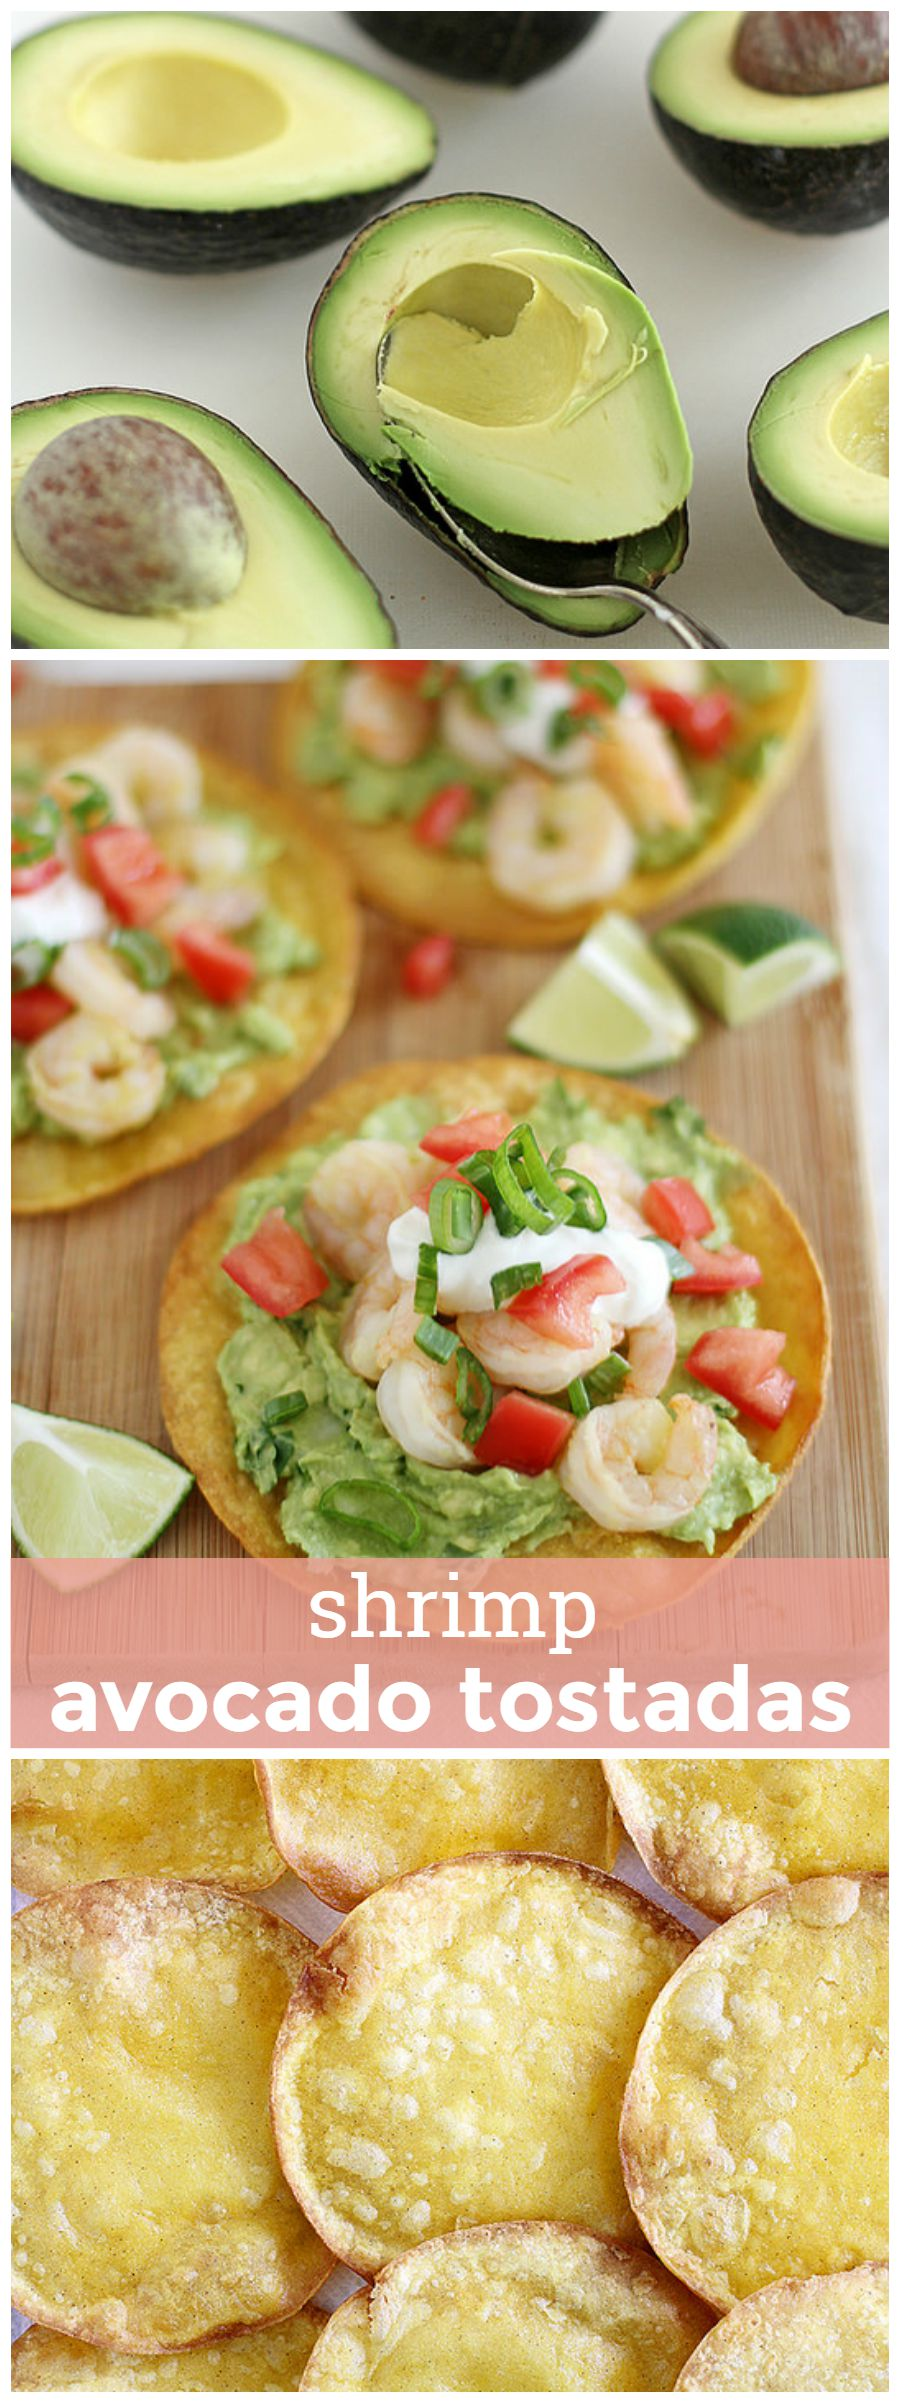 Shrimp Avocado Tostadas -- crispy tortillas topped with guacamole, tomatoes, sour cream and shrimp. It's hard to eat just one! girlversusdough.com @girlversusdough